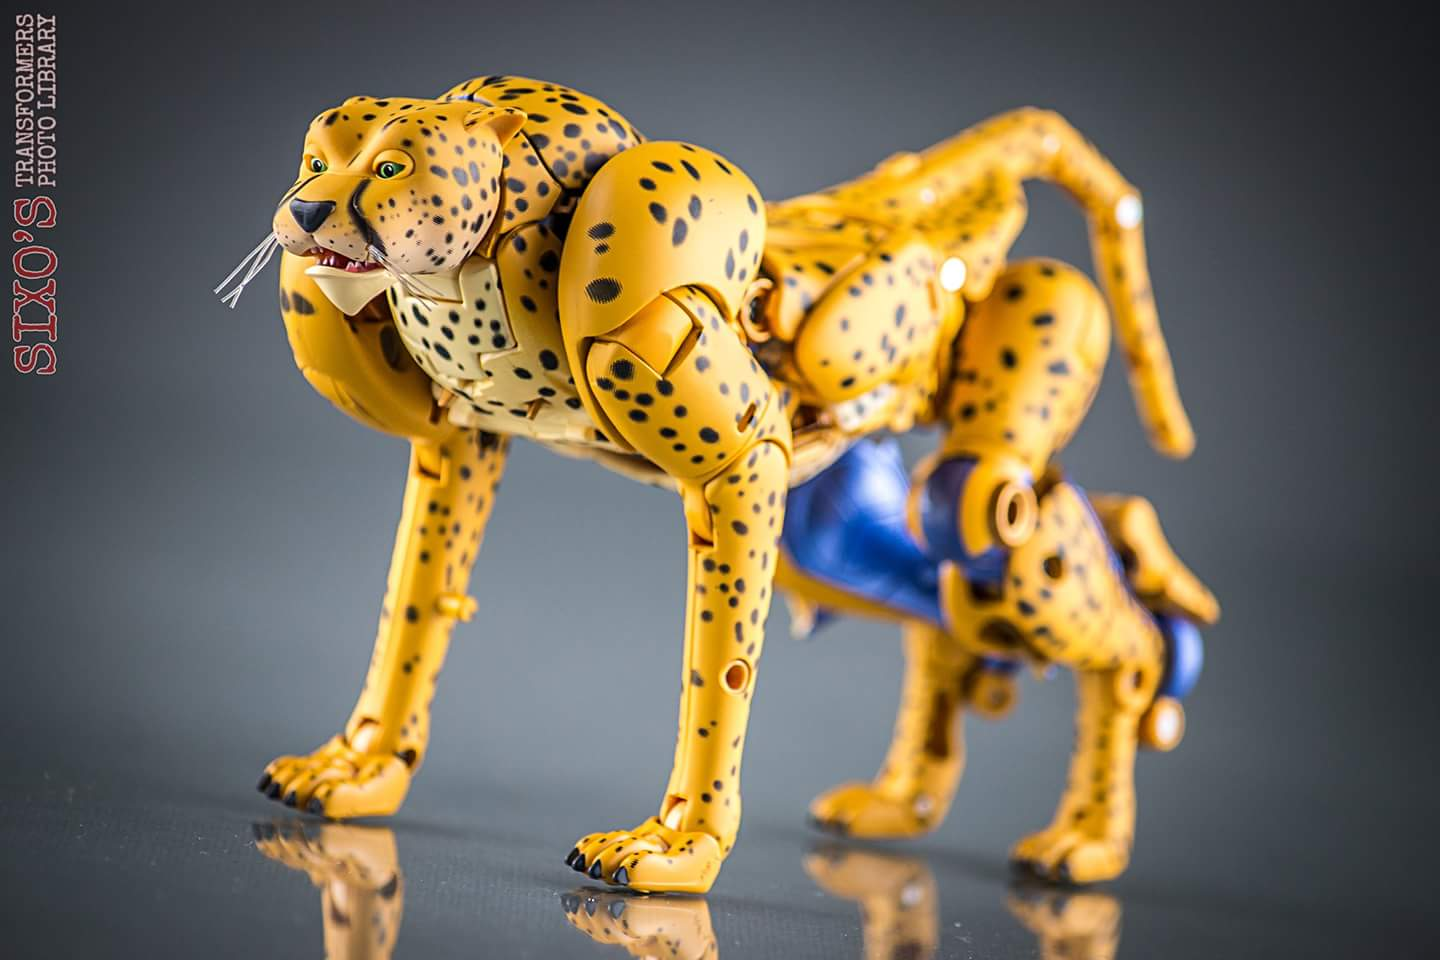 [Masterpiece] MP-34 Cheetor et MP-34S Shadow Panther (Beast Wars) - Page 2 YbmeoQVk